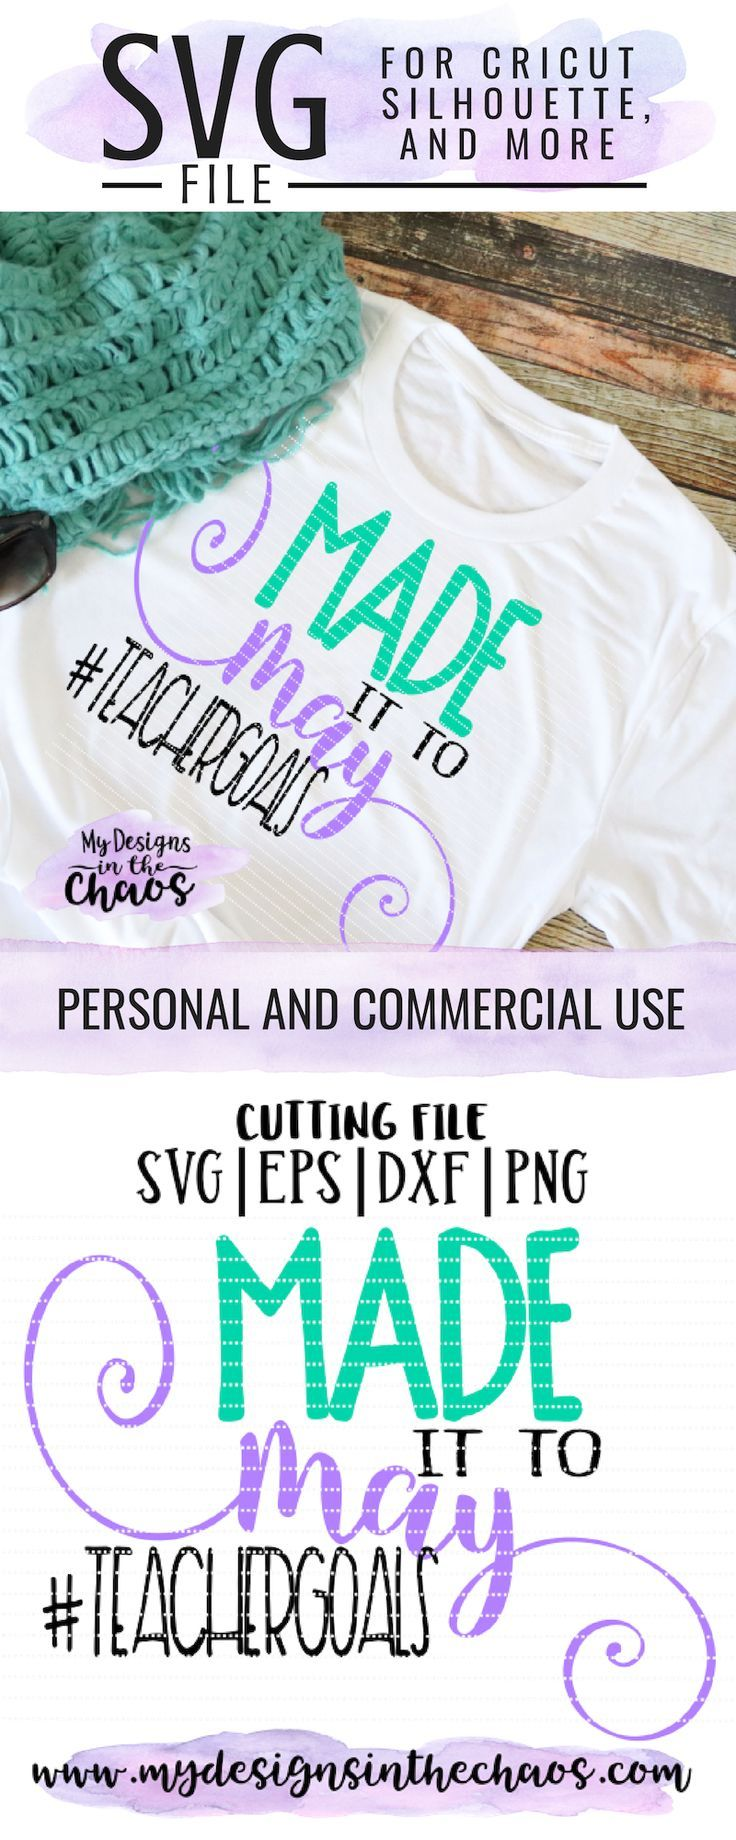 Use this downloadable Last Day of School SVG file to make a t-shirt as a teachers gift to celebrate the end of the school year and summer vacation. It is perfect for your Silhouette or  Cricut cutting machine. | Made It to May